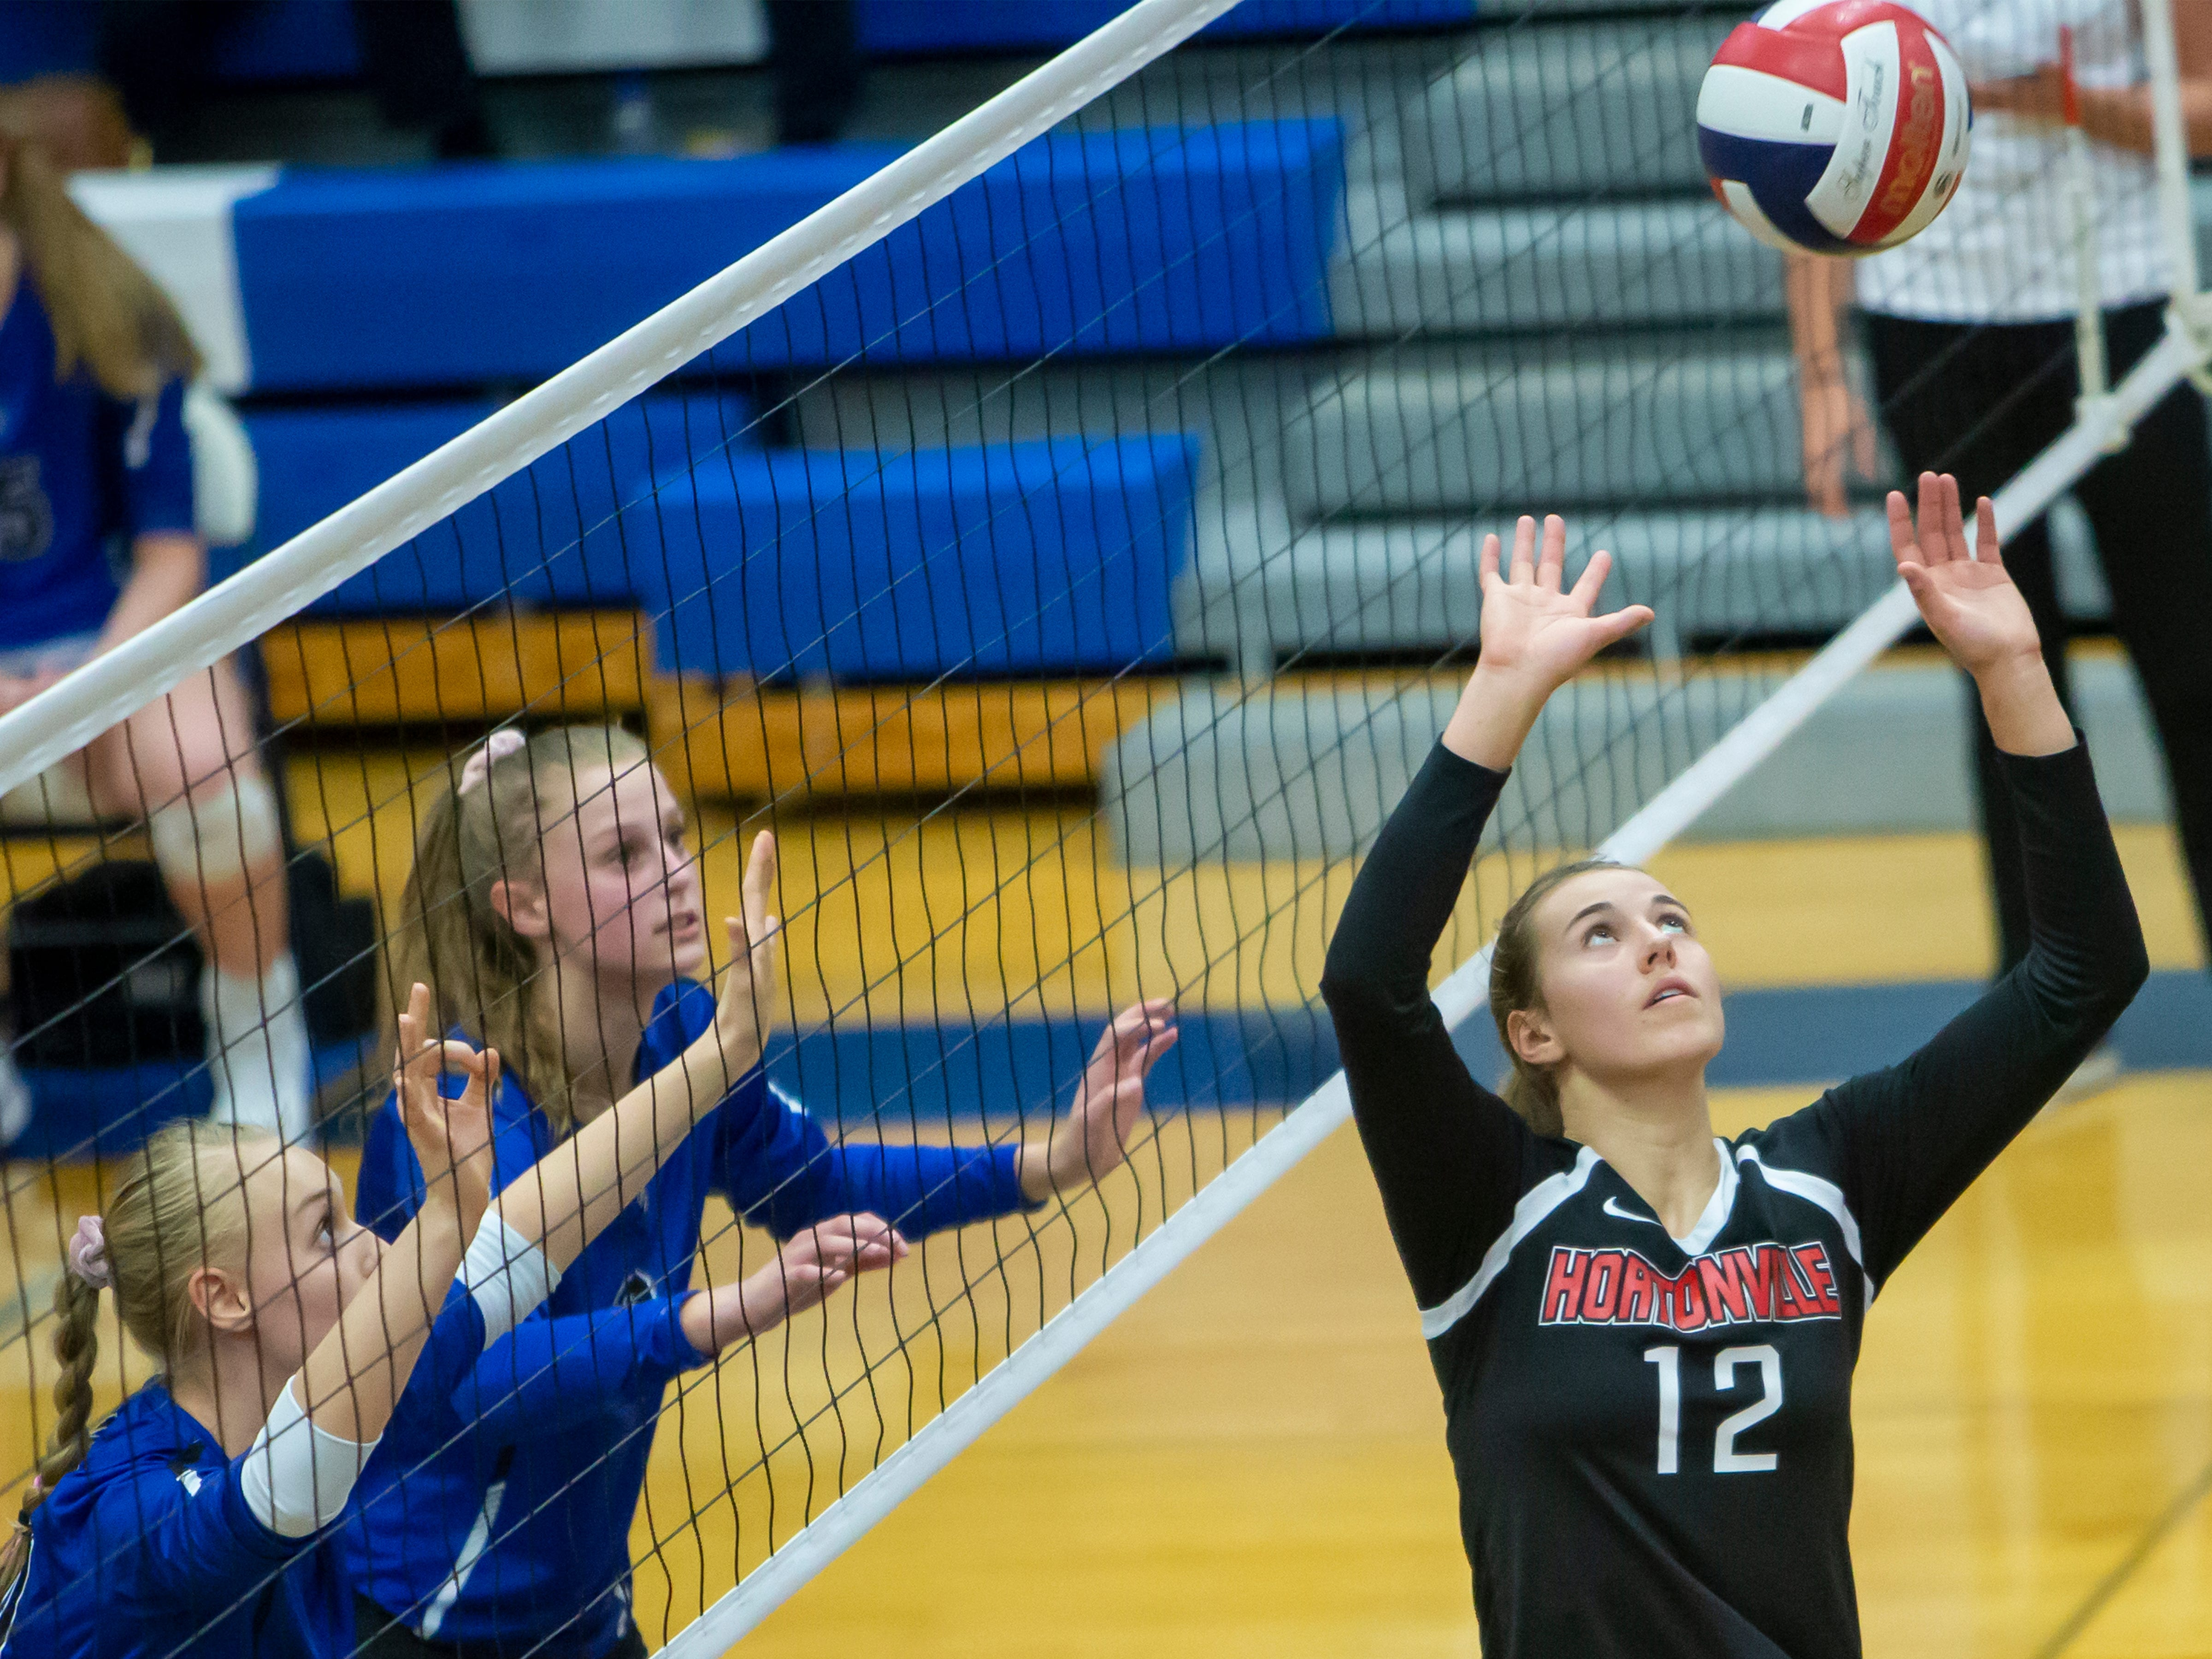 Hortonville's Aliza VanDenElzen sets the ball at the net playing at Oshkosh West High School on Thursday, October 11, 2018.